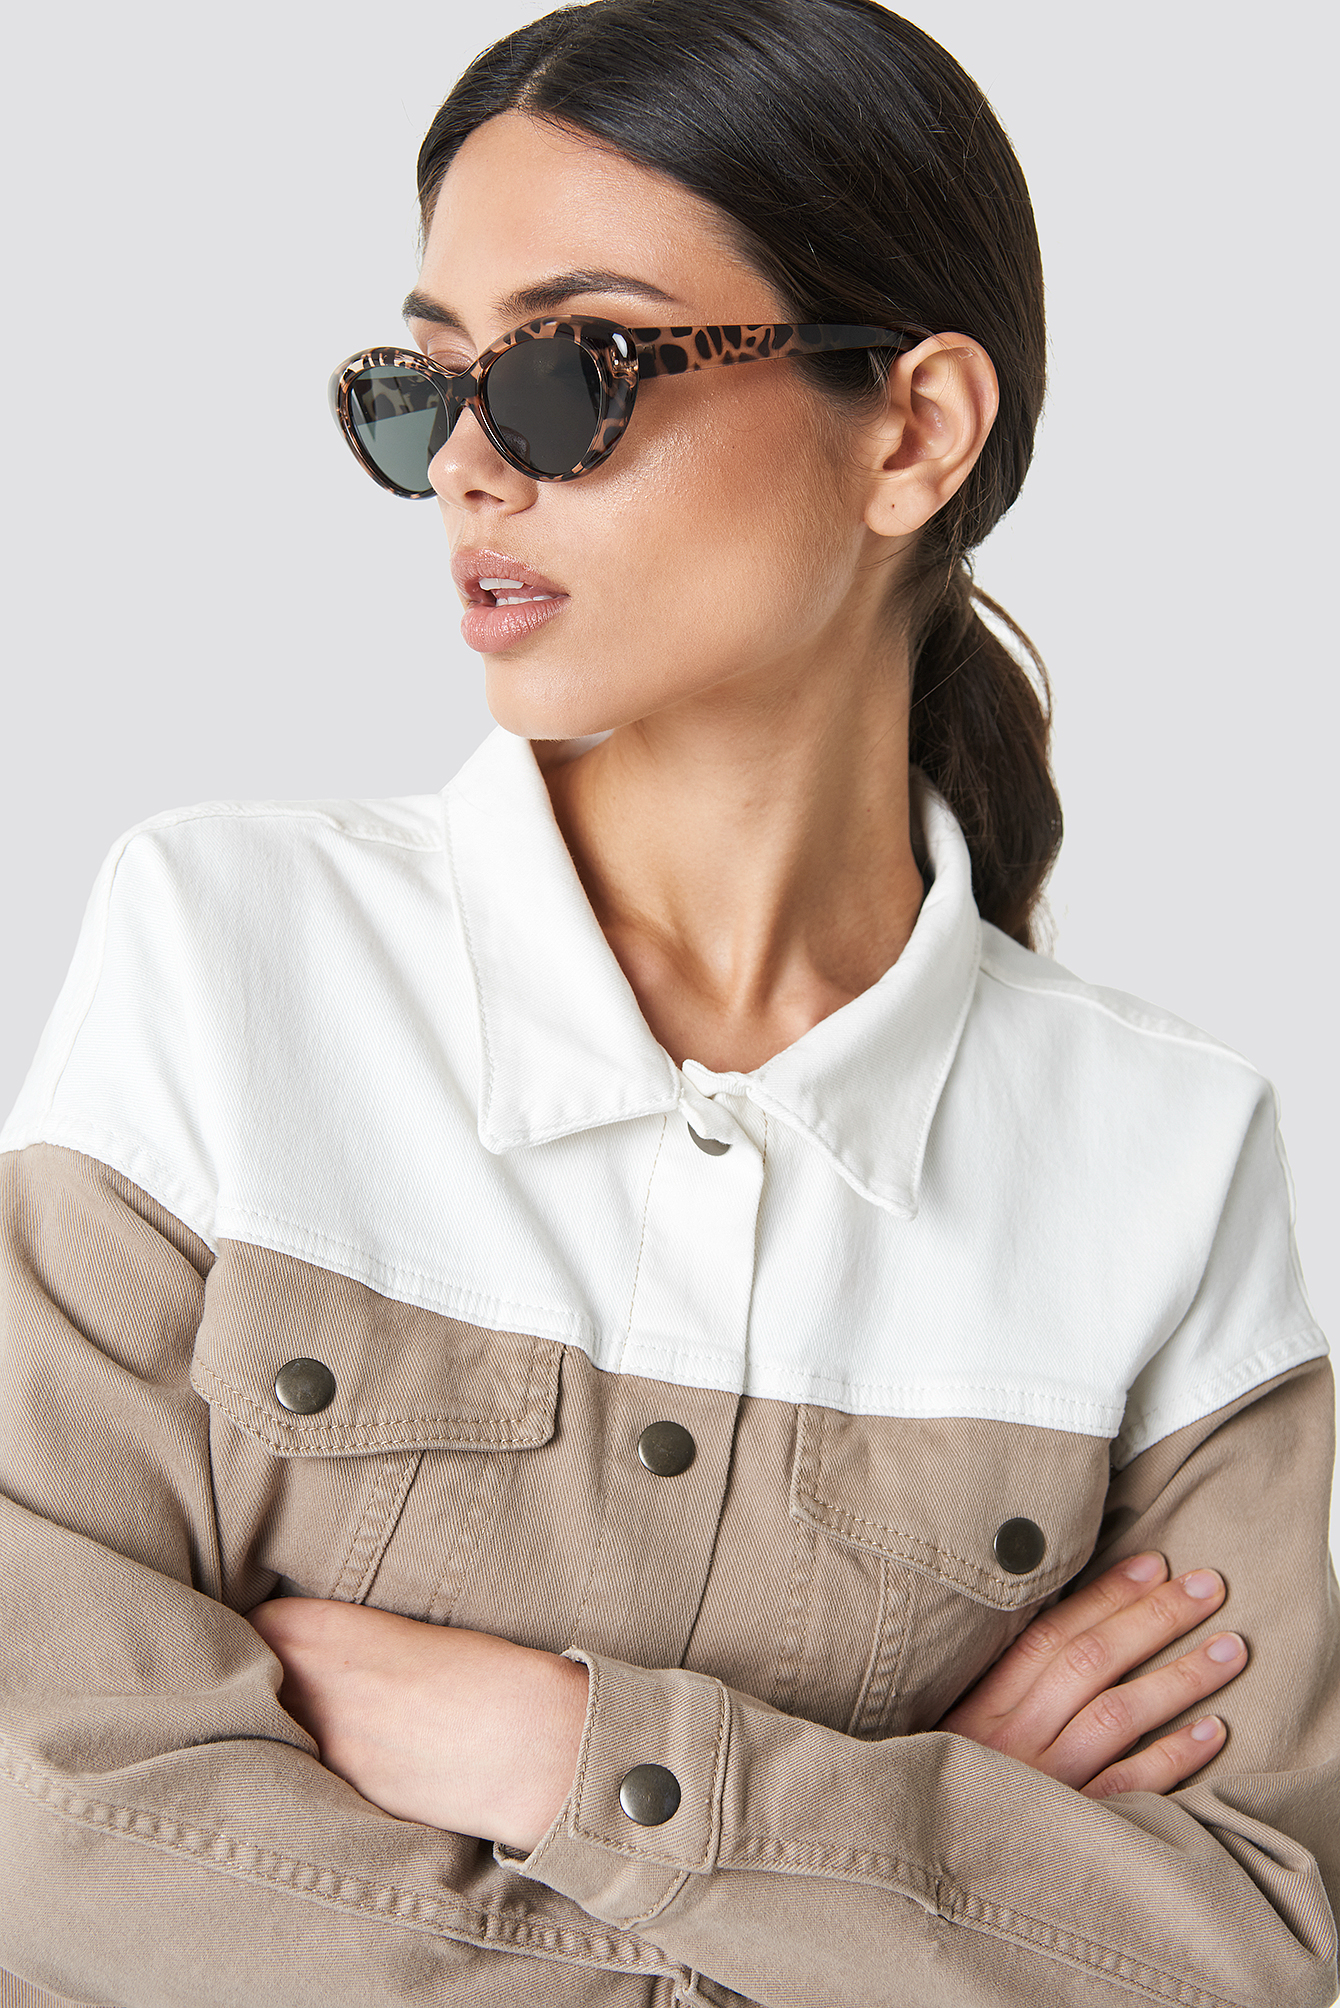 ROUNDED CATEYE SUNGLASSES - BROWN